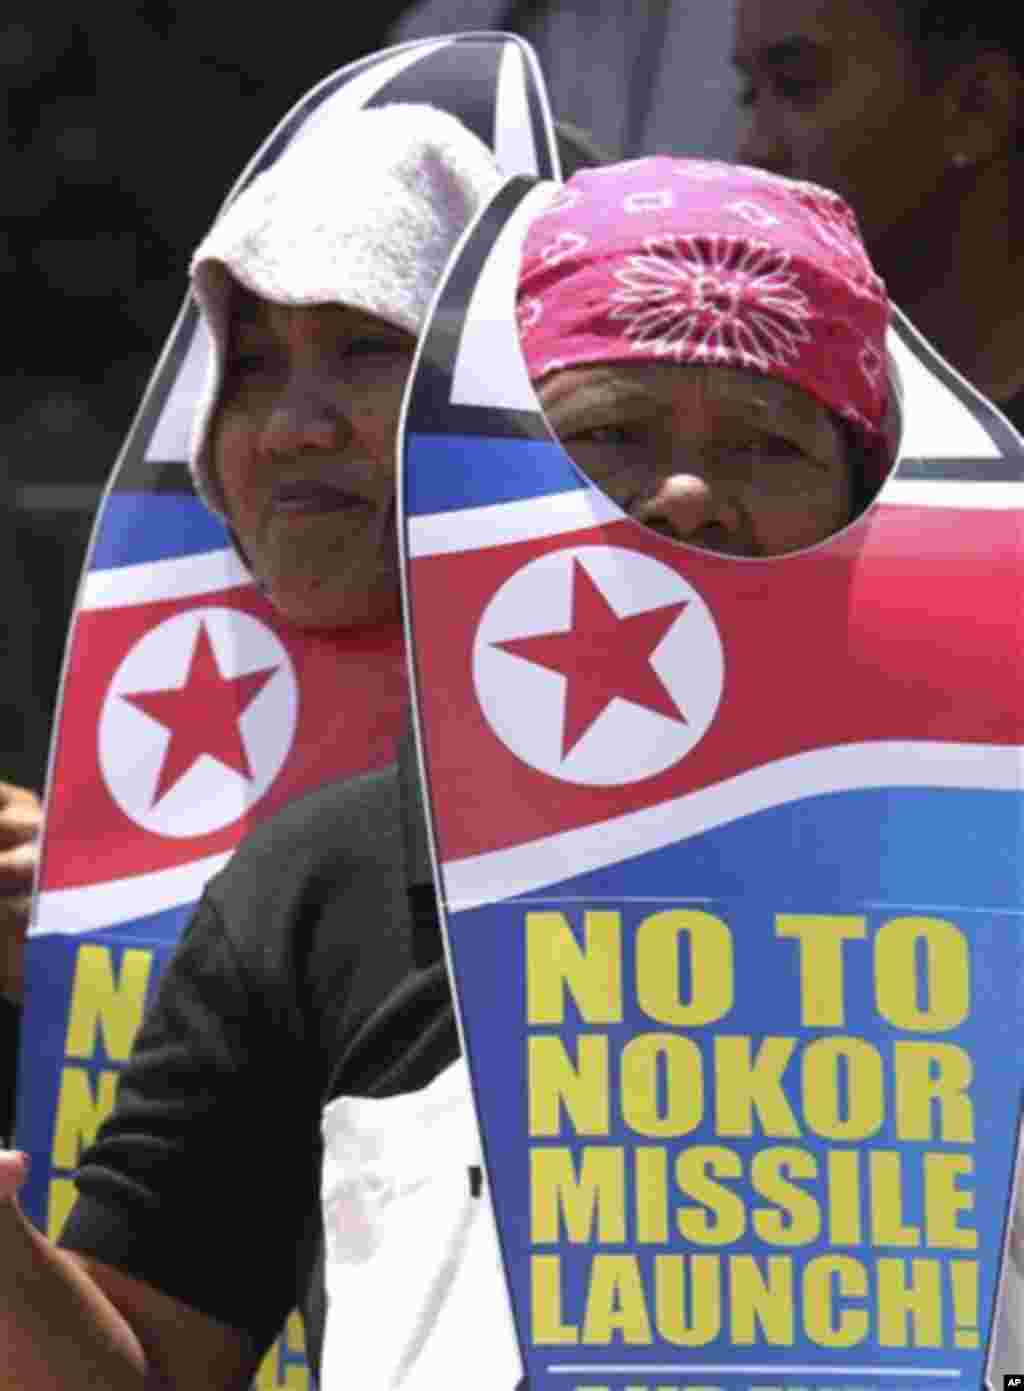 Two female protesters wearing a rocket shaped cut-out placards join a picket in protest of North Korea's rocket launch Friday, April 13, 2012 in suburban Quezon City, north of Manila, Philippines. The protesters demanded that North Korea stop any plans to